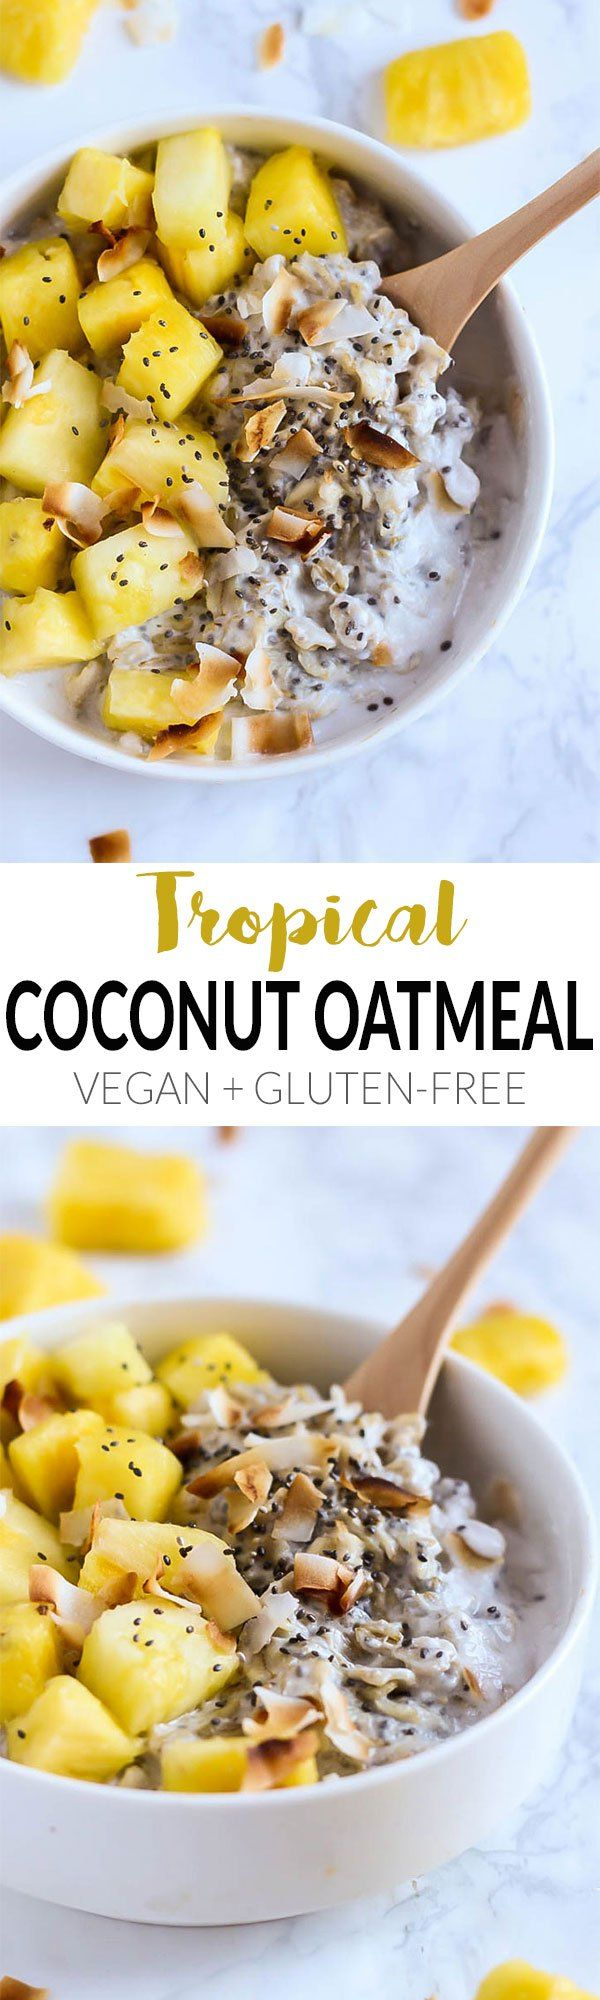 This creamy Tropical Coconut Oatmeal is like the beach in a bowl! Topped with juicy pineapple, it's the perfect vegan & gluten-free breakfast for everyone. All clean eating ingredients are used for this healthy breakfast recipe. Pin now to make later!